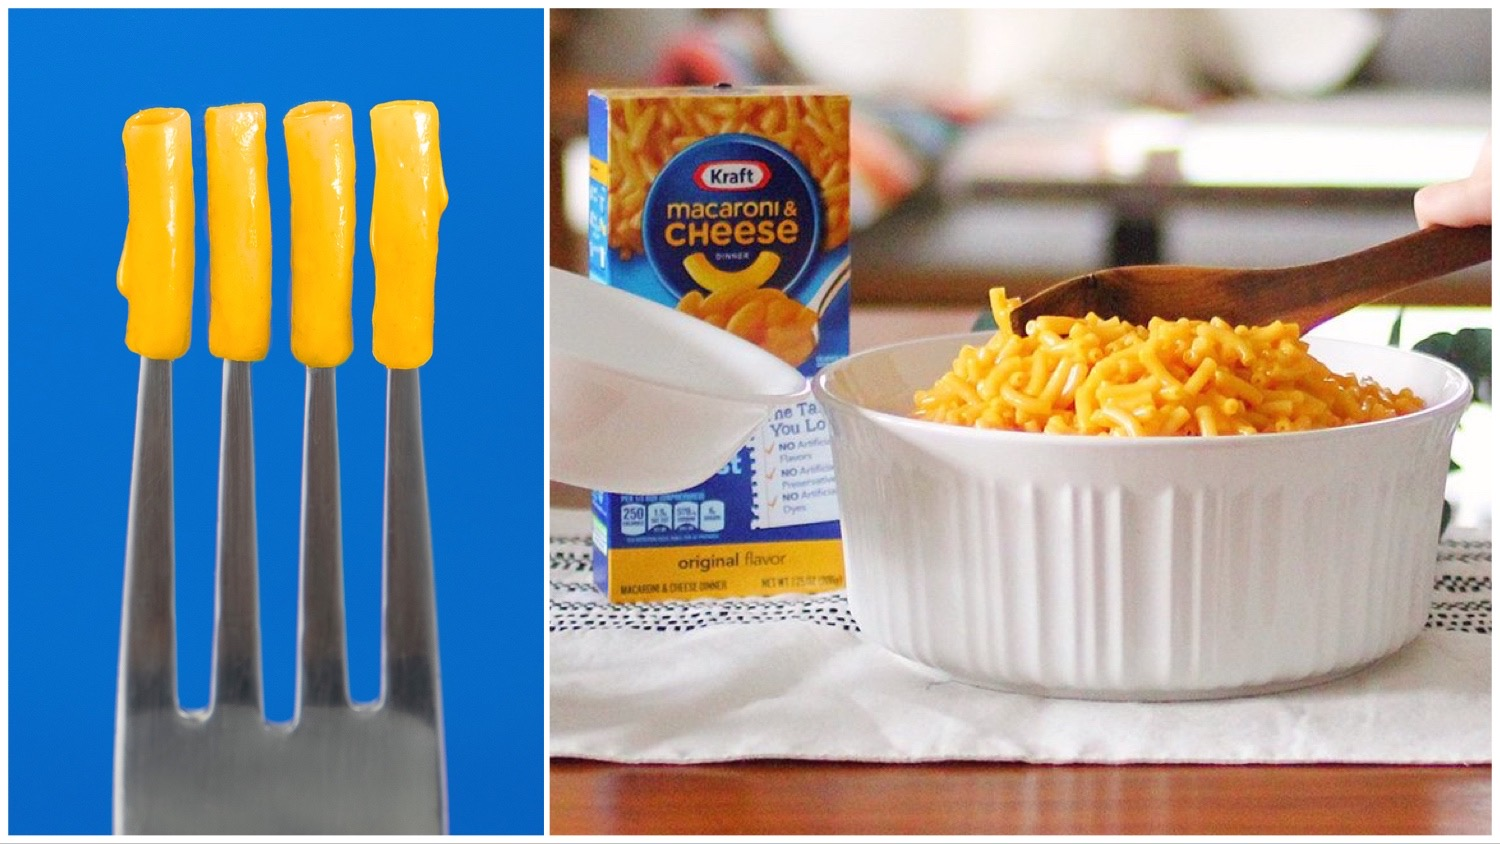 Split image of Kraft logo featuring maceroni on a fork (left) and a box of the brand's vegan mac and cheese next to a plated up serving (right).